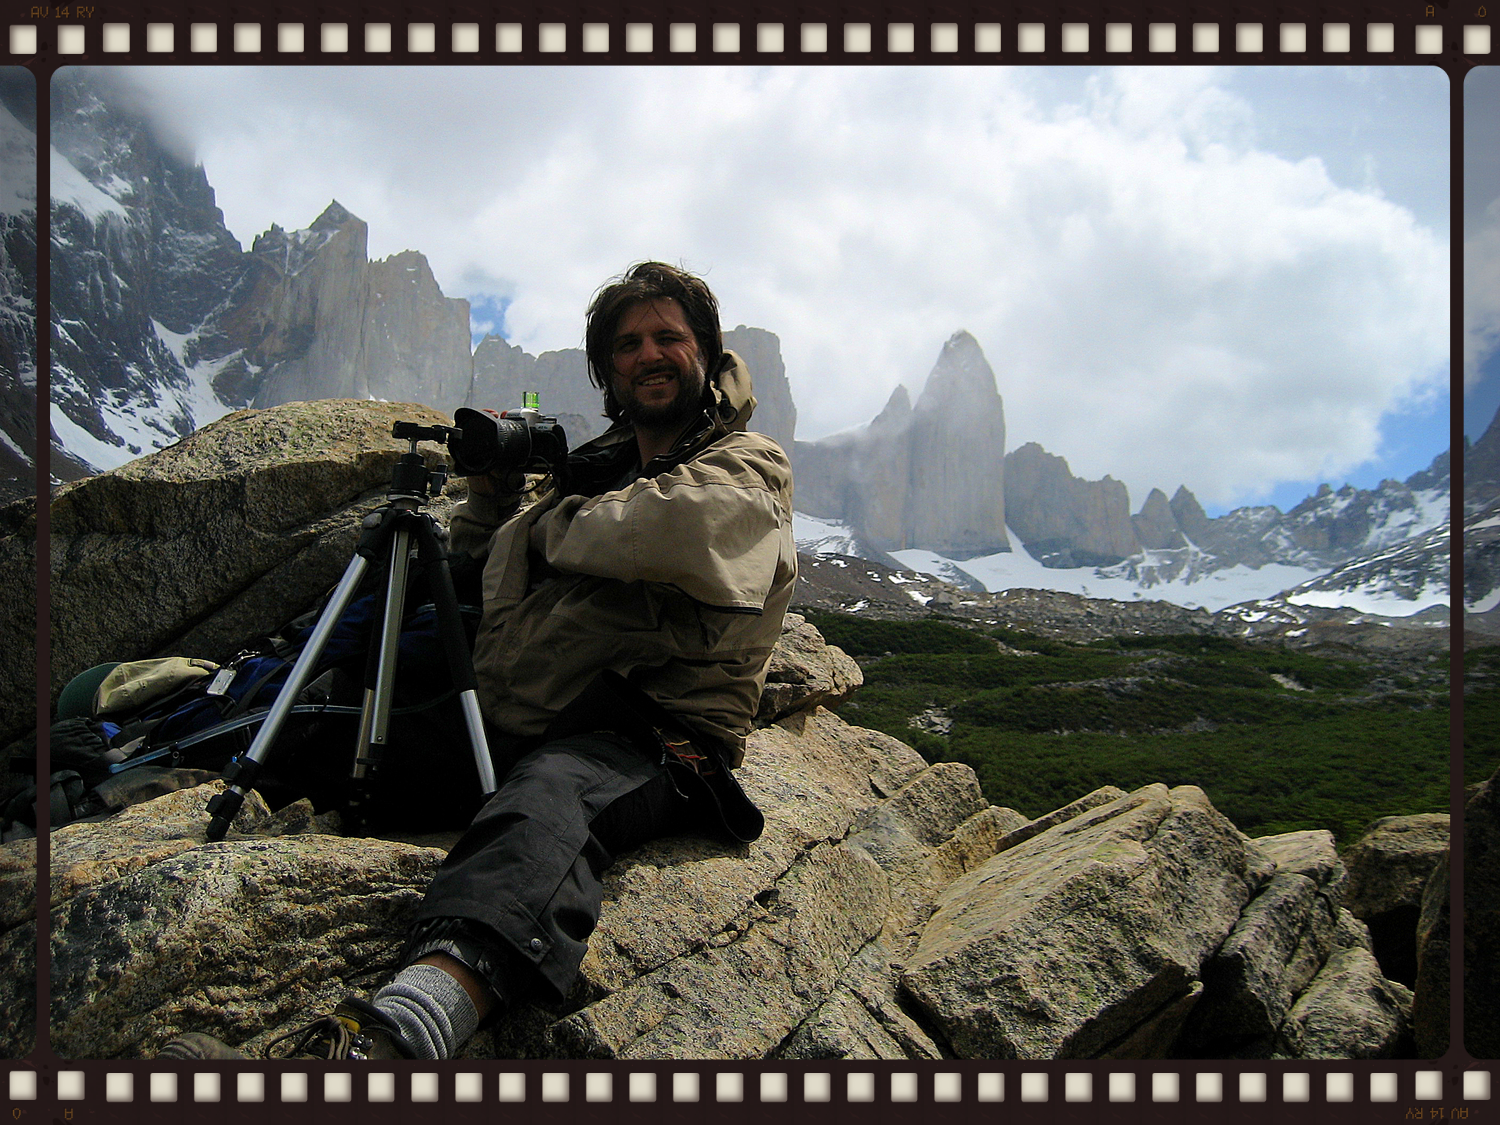 Shooting in Torres del Paine National Park, Patagonia, Chile.